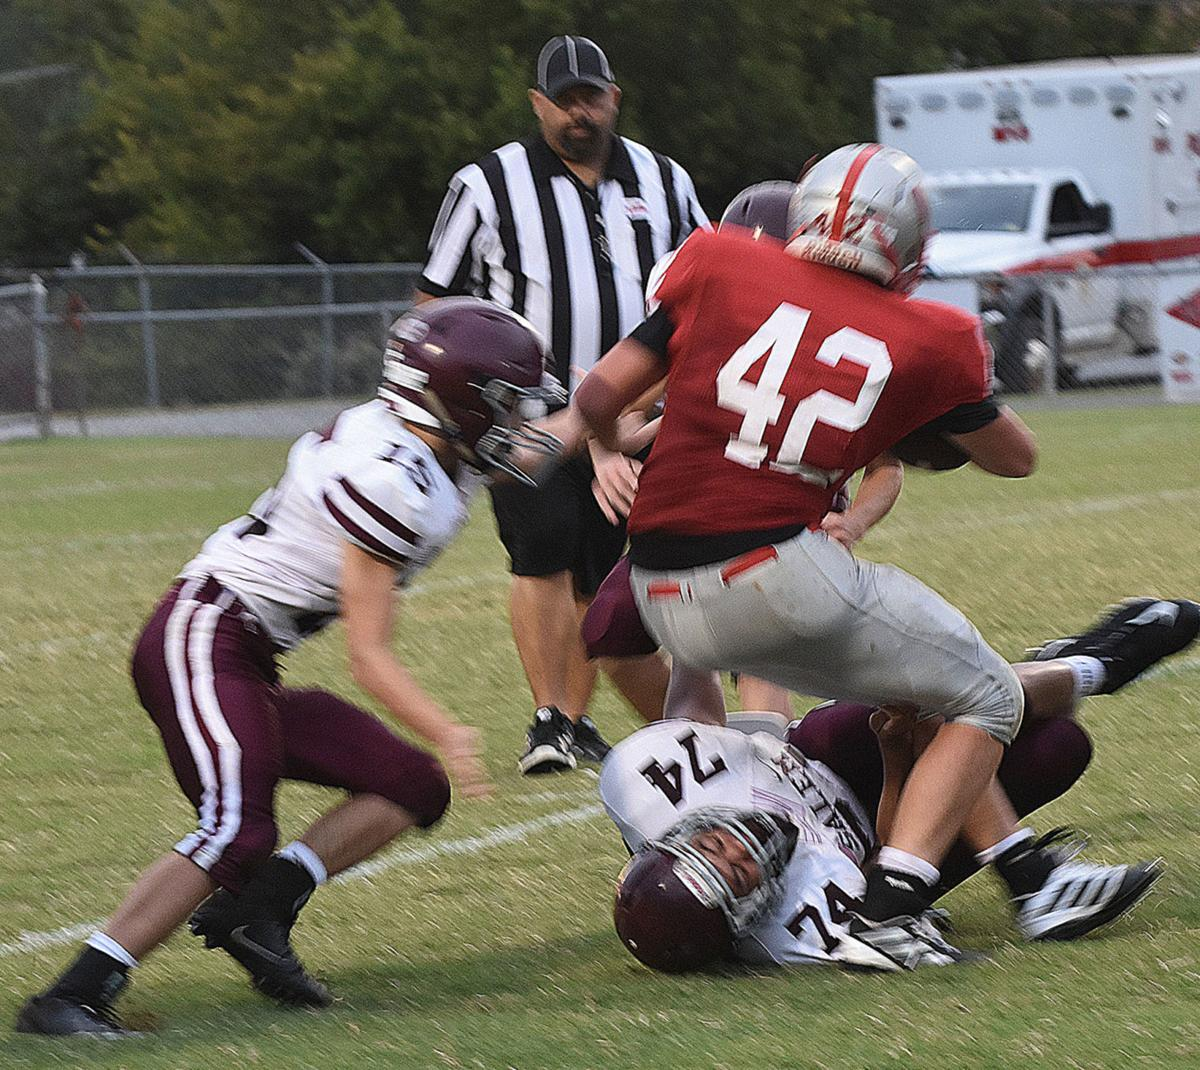 Davis scores four touchdowns in two-point win over Salem